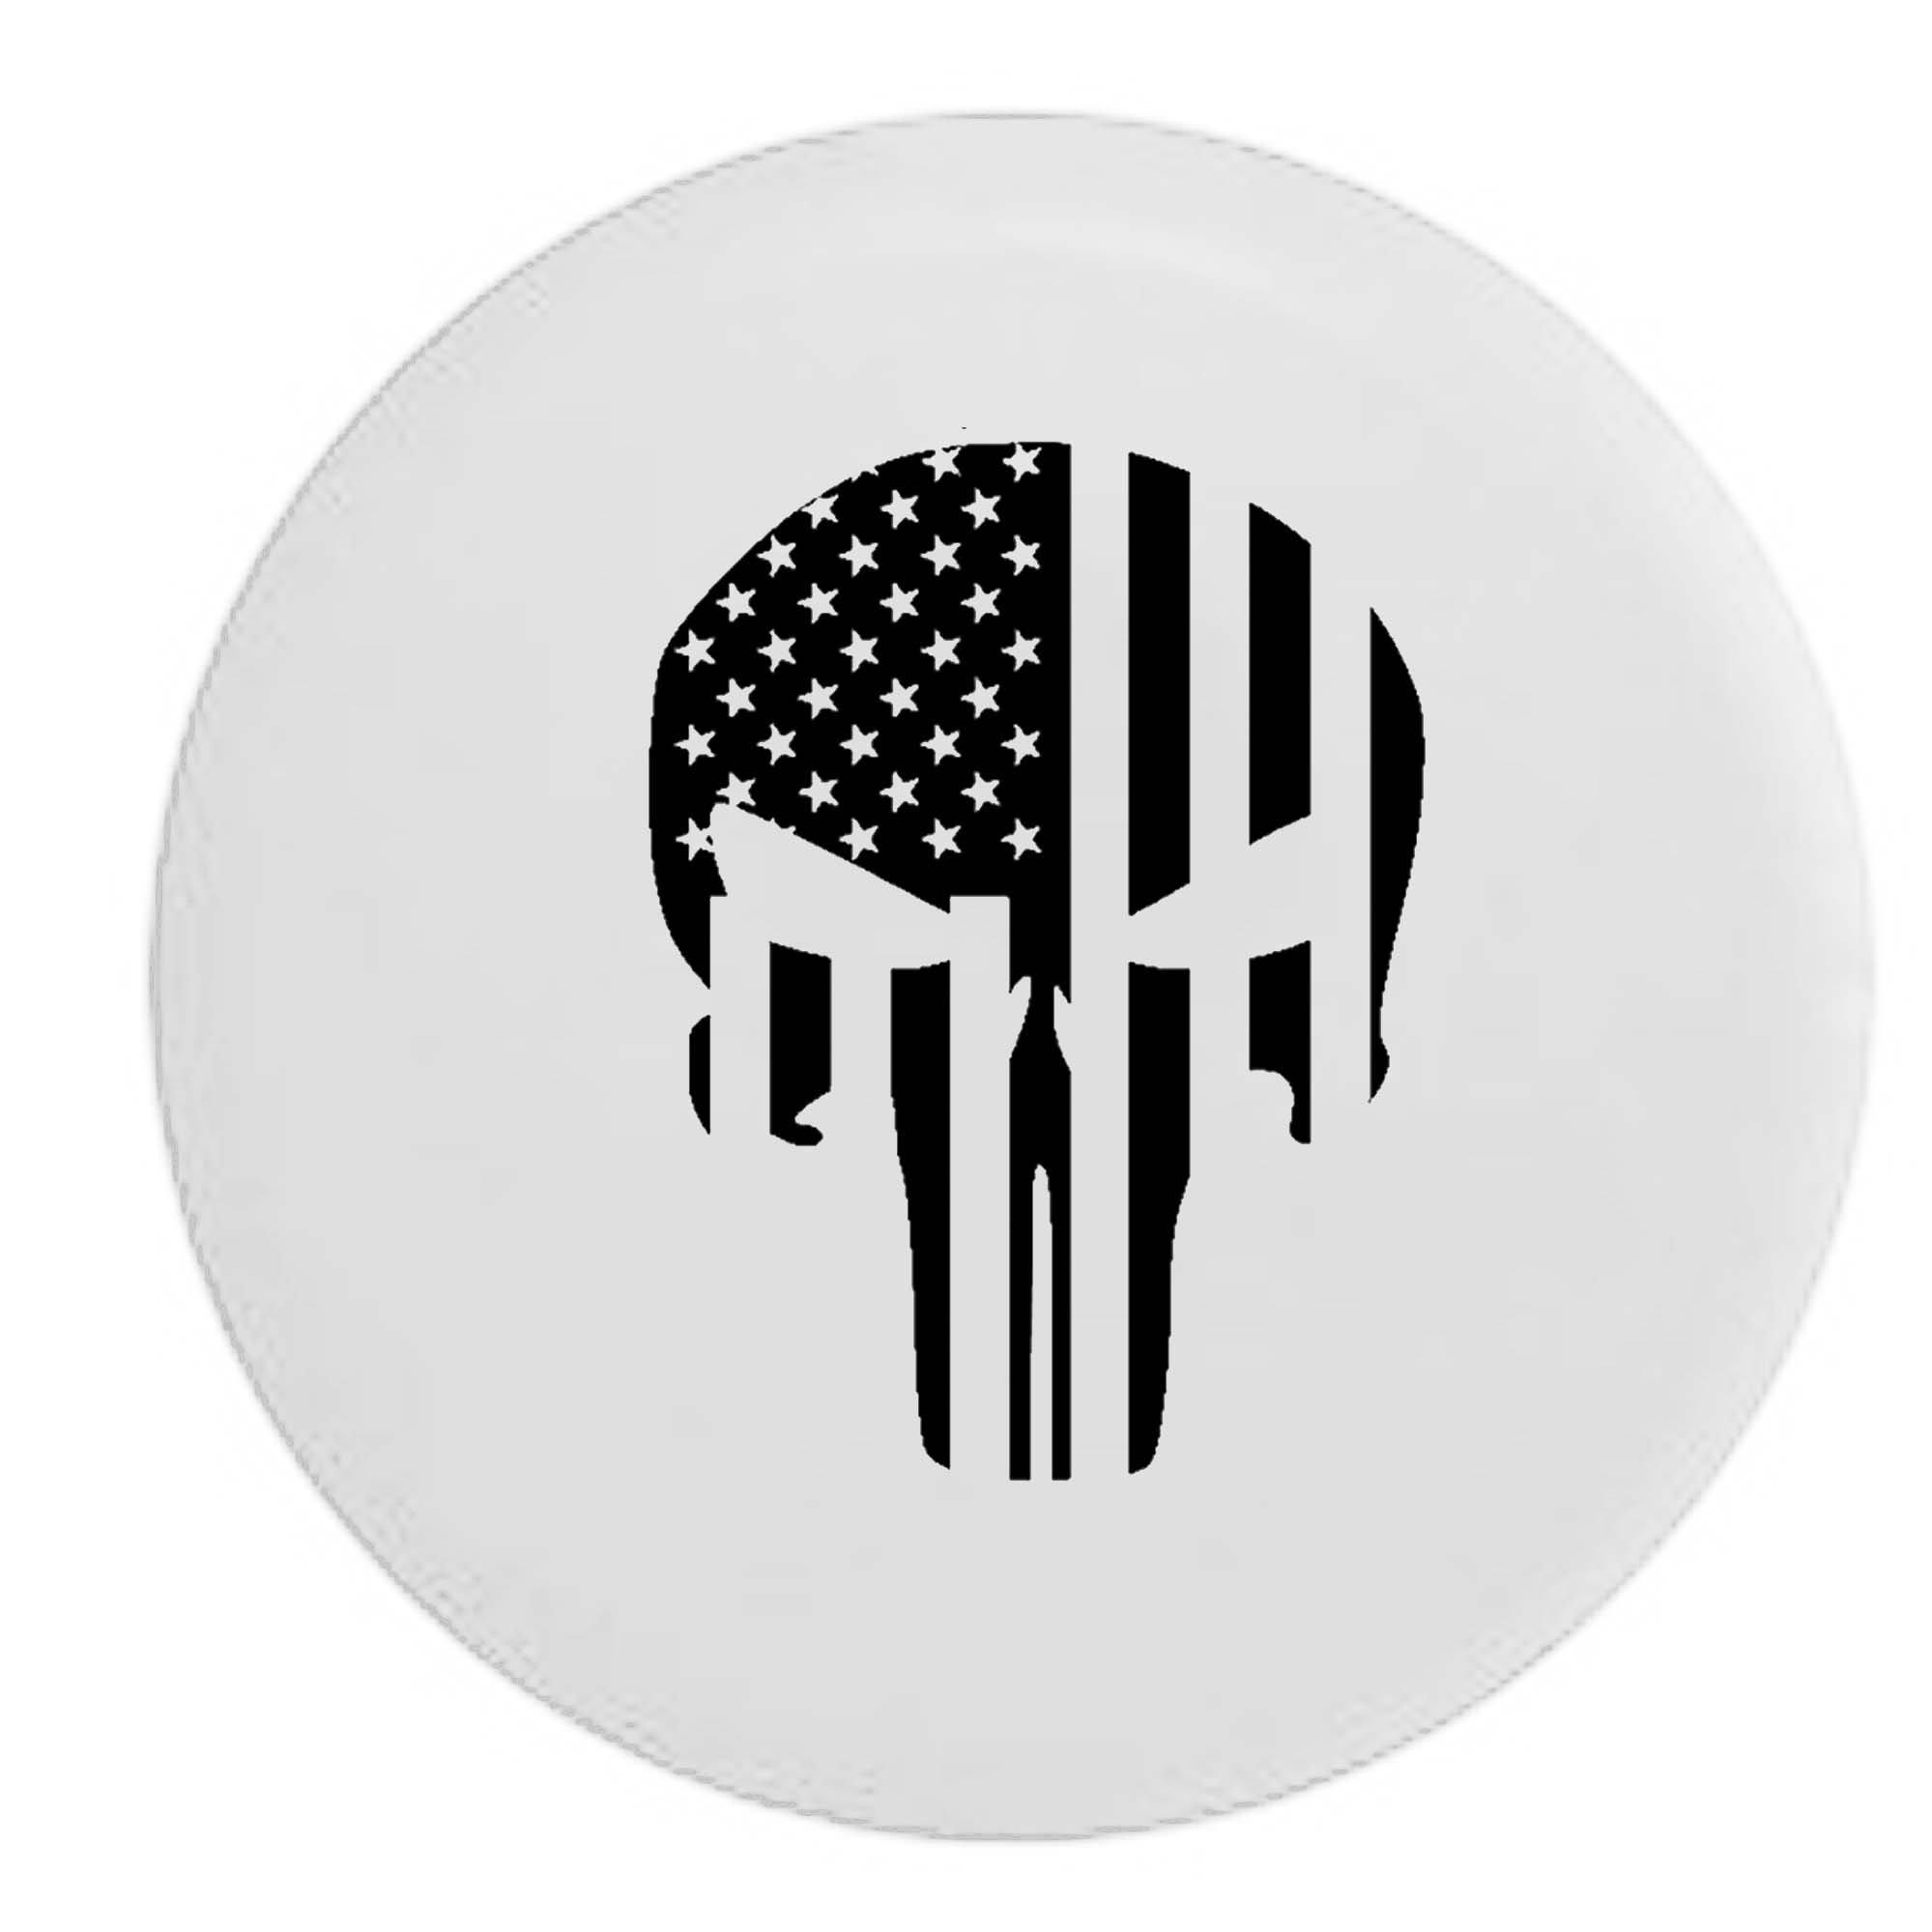 Pike Outdoors American Flag Vertical Tactical Military Patriot Skull RV Spare Tire Cover OEM Vinyl White 30 in by Pike Outdoors